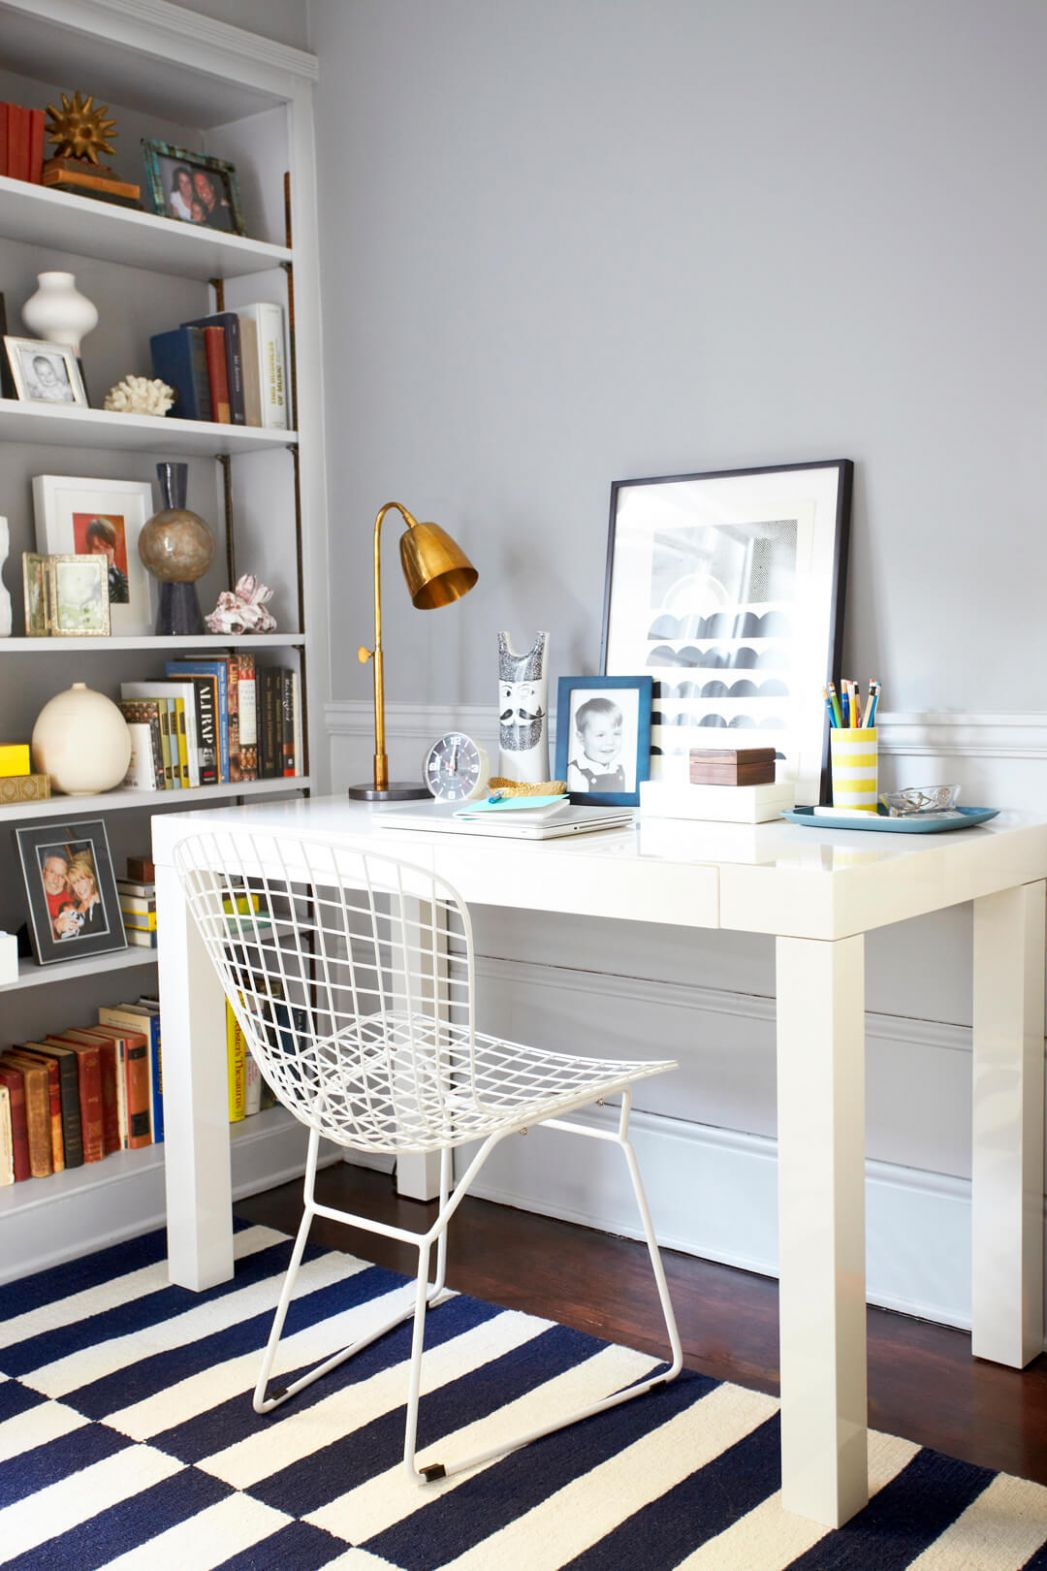 A Roundup of 11 Affordable Desks - Emily Henderson